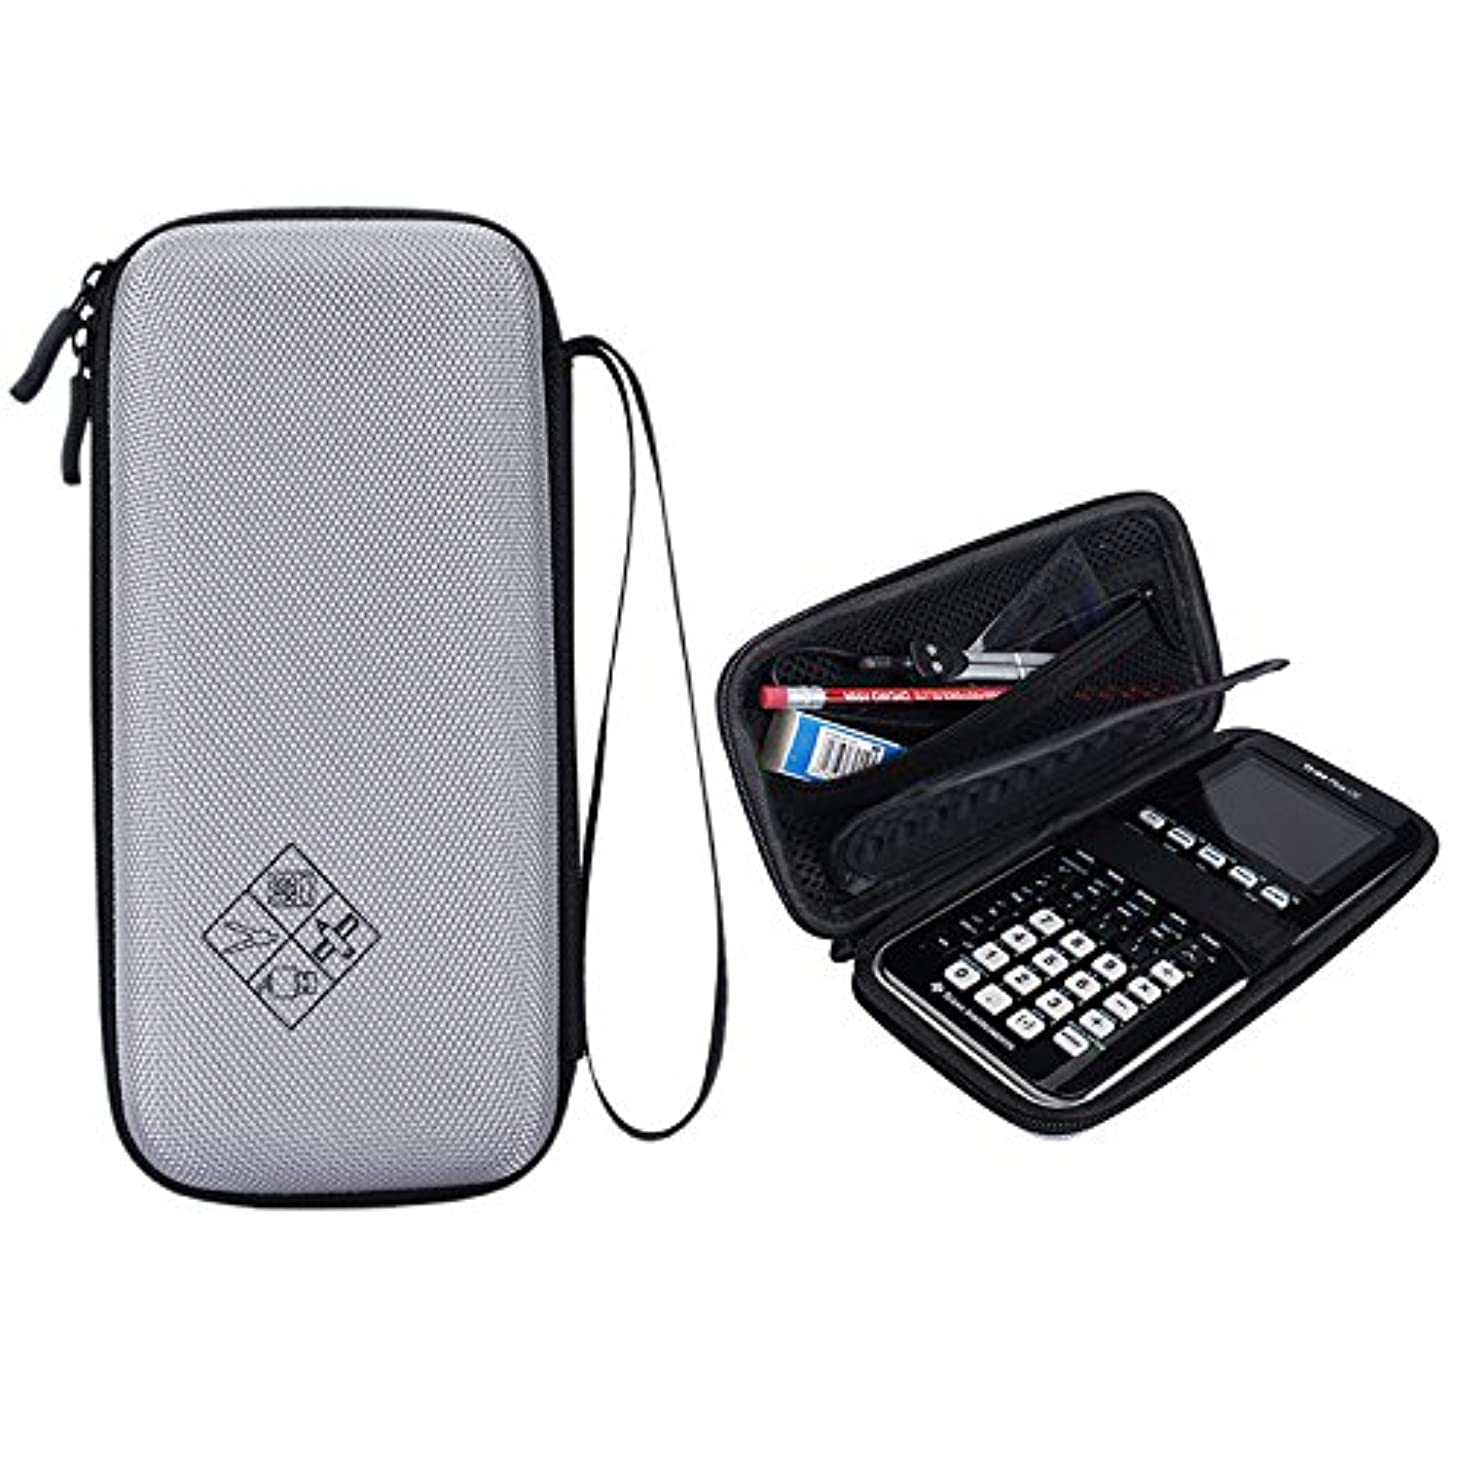 MASiKEN Hard EVA Carrying Case for Texas Instruments TI-84 Plus CE Graphing Calculator Pouch Box Extra Room for Pen and Stationer Protective CE Storage Bag